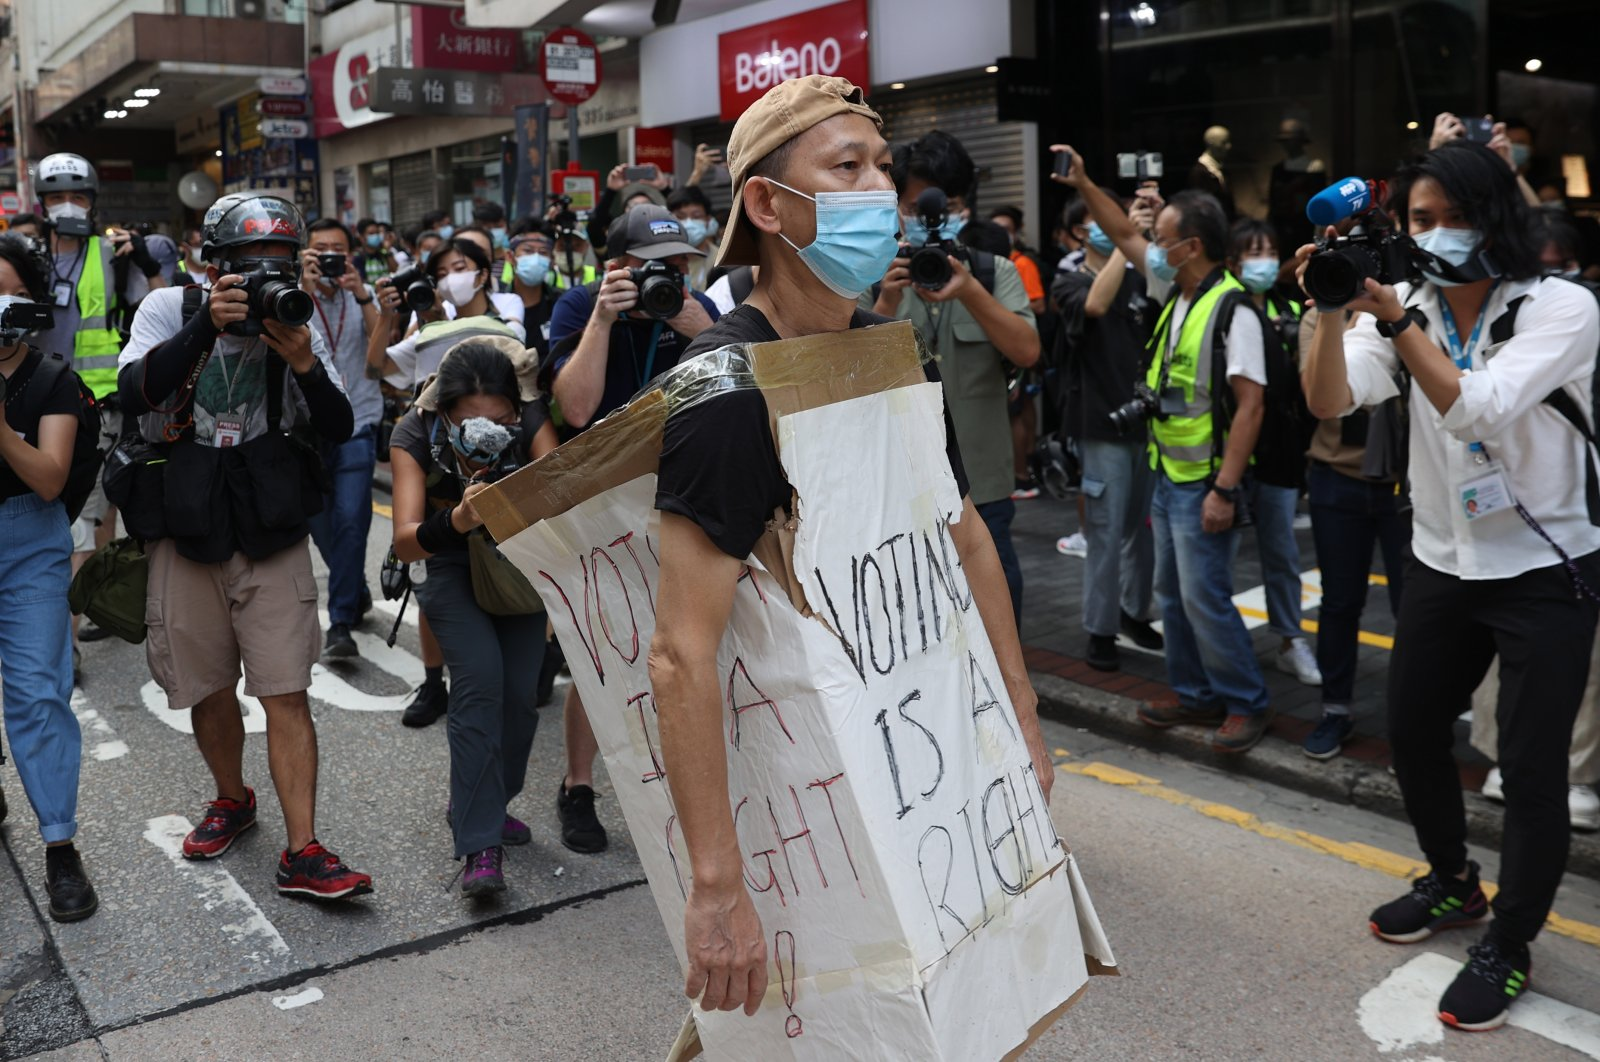 A protester wearing a cardboard sign takes part in a rally against the postponement of the Legislative Council Elections in Hong Kong, China, Sept. 6, 2020. (EPA Photo)